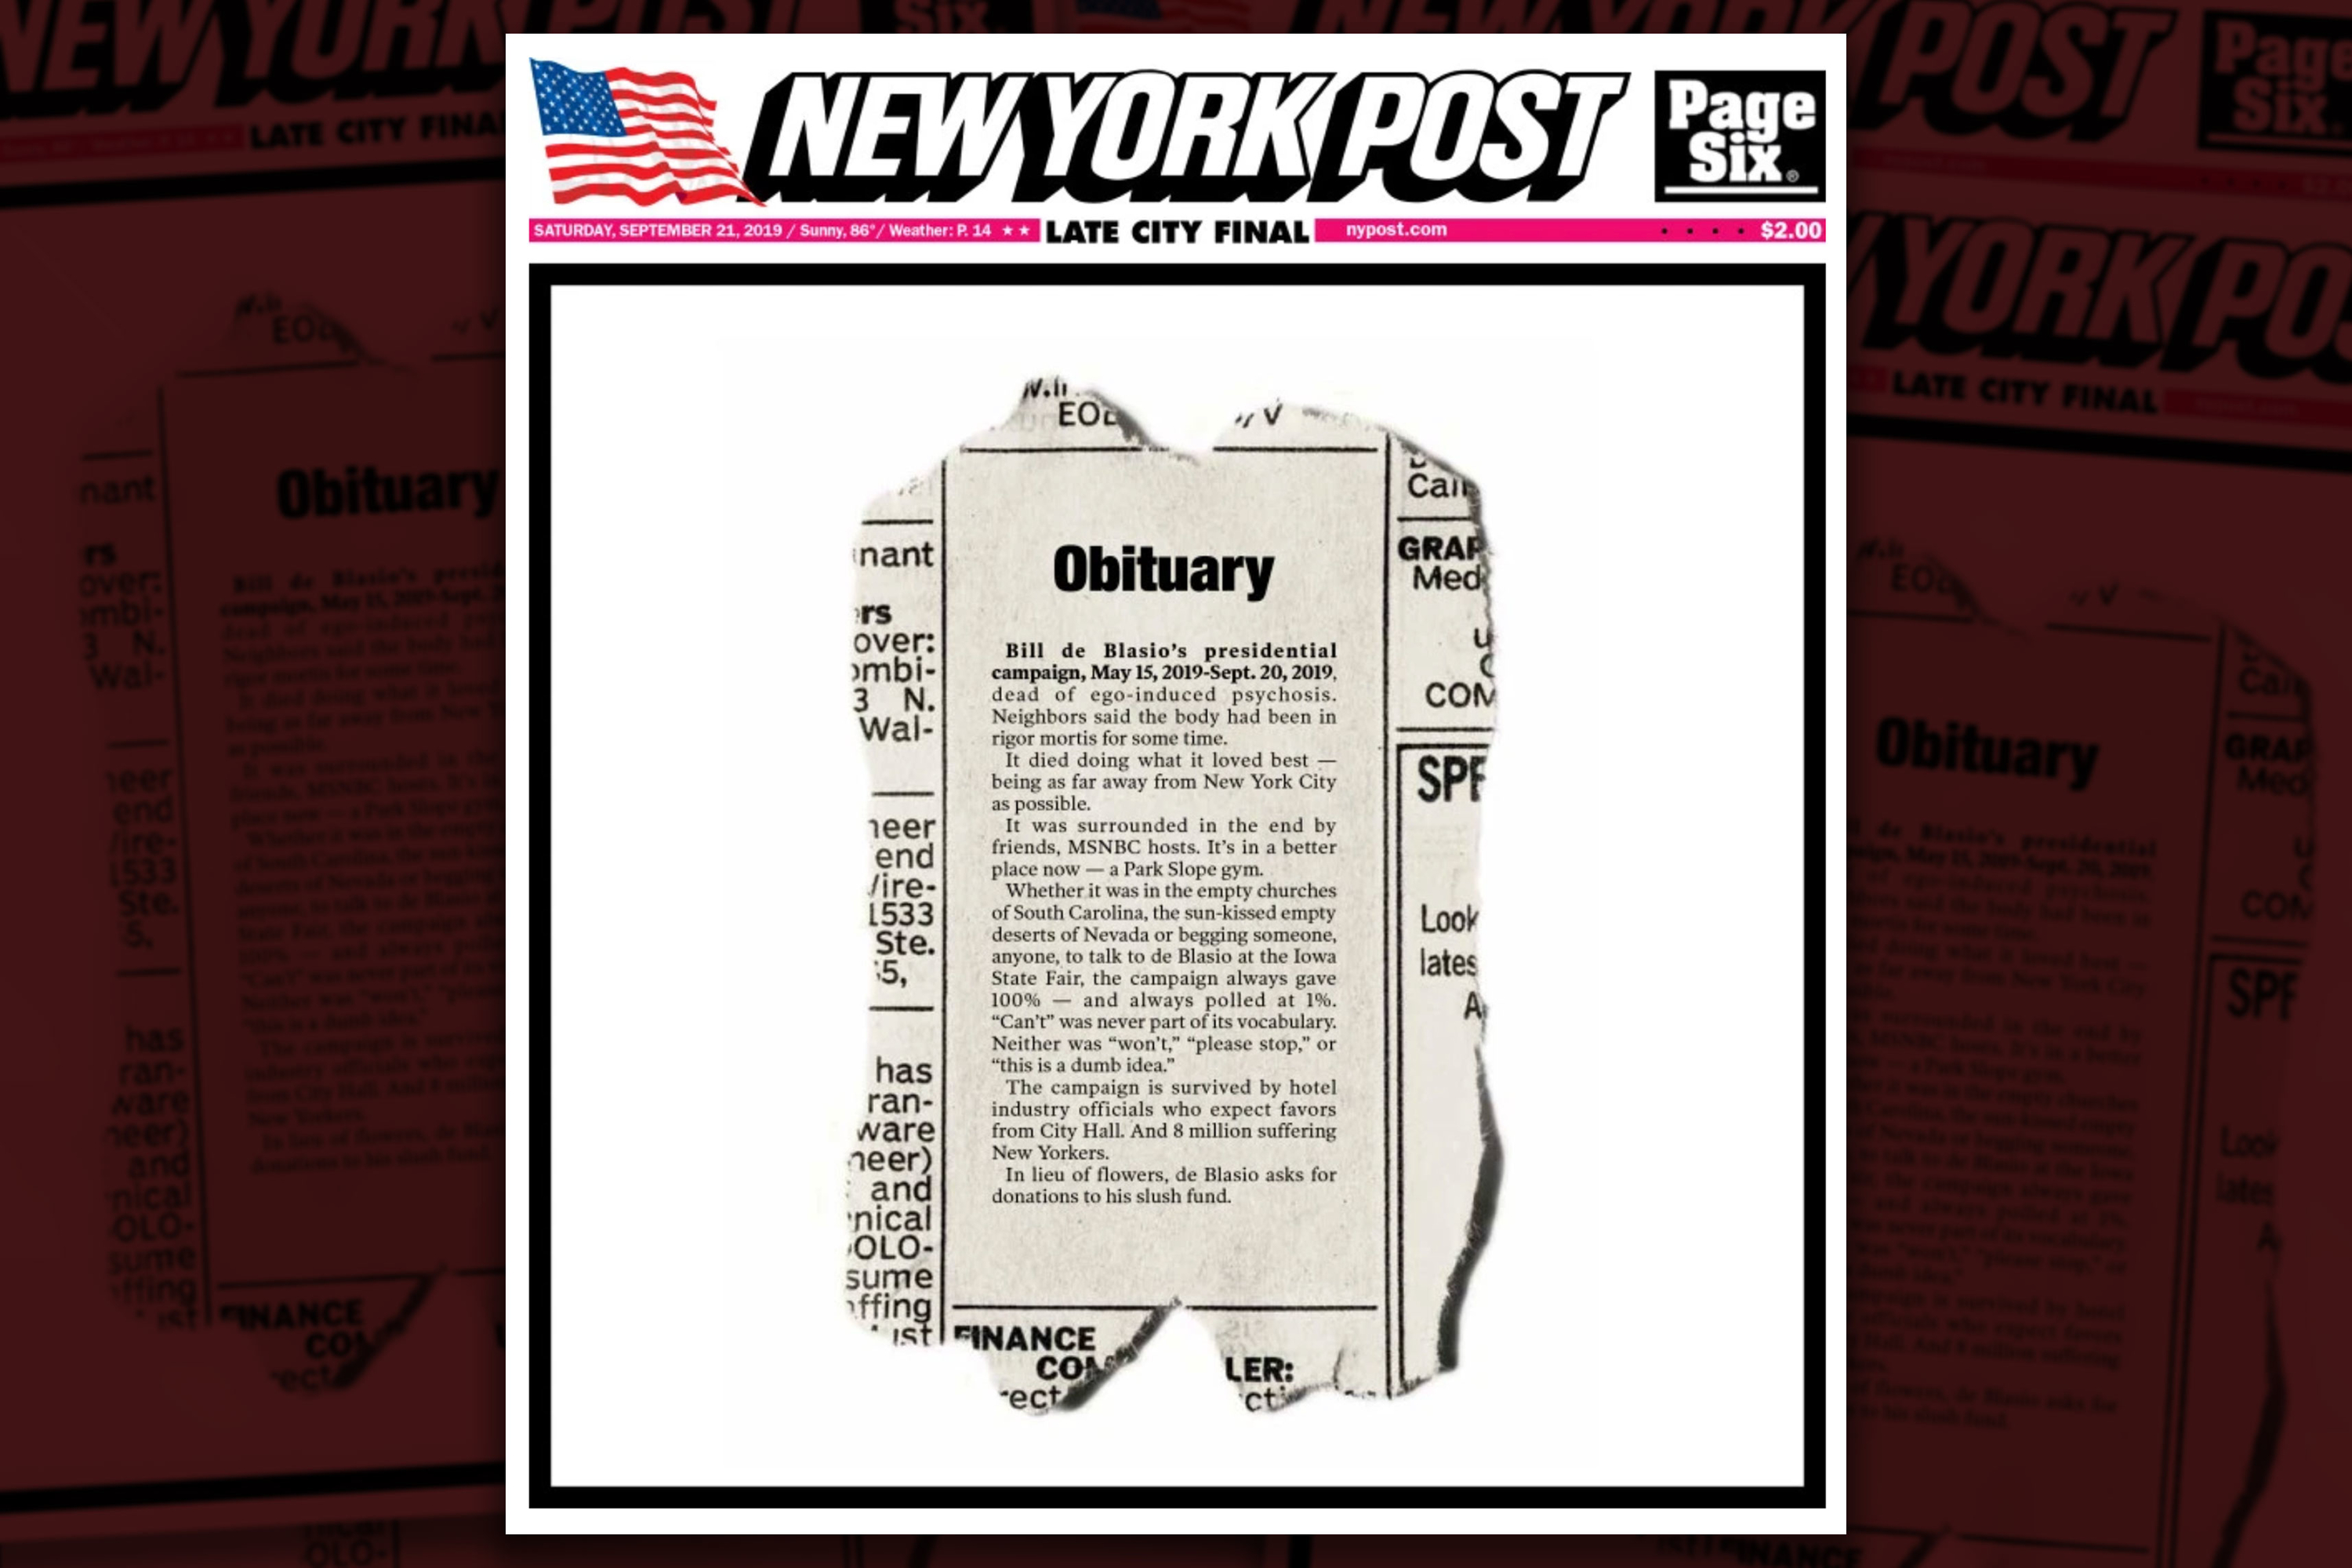 ICYMI: The New York Post's deliciously harsh obit for the de Blasio campaign